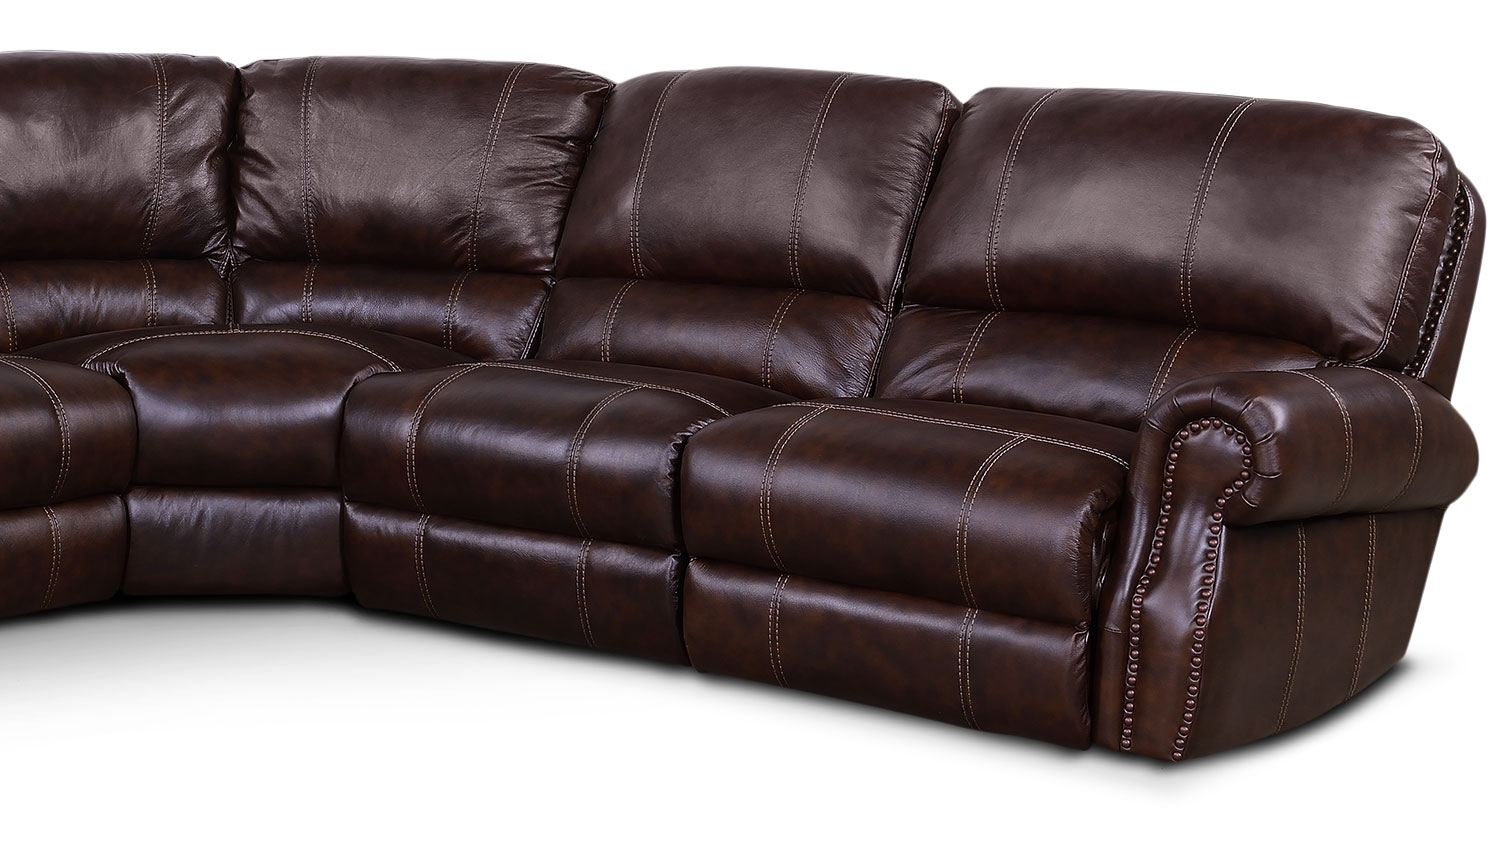 Dartmouth 6-Piece Power Reclining Sectional W/ Left-Facing Chaise pertaining to Norfolk Chocolate 6 Piece Sectionals With Laf Chaise (Image 8 of 30)